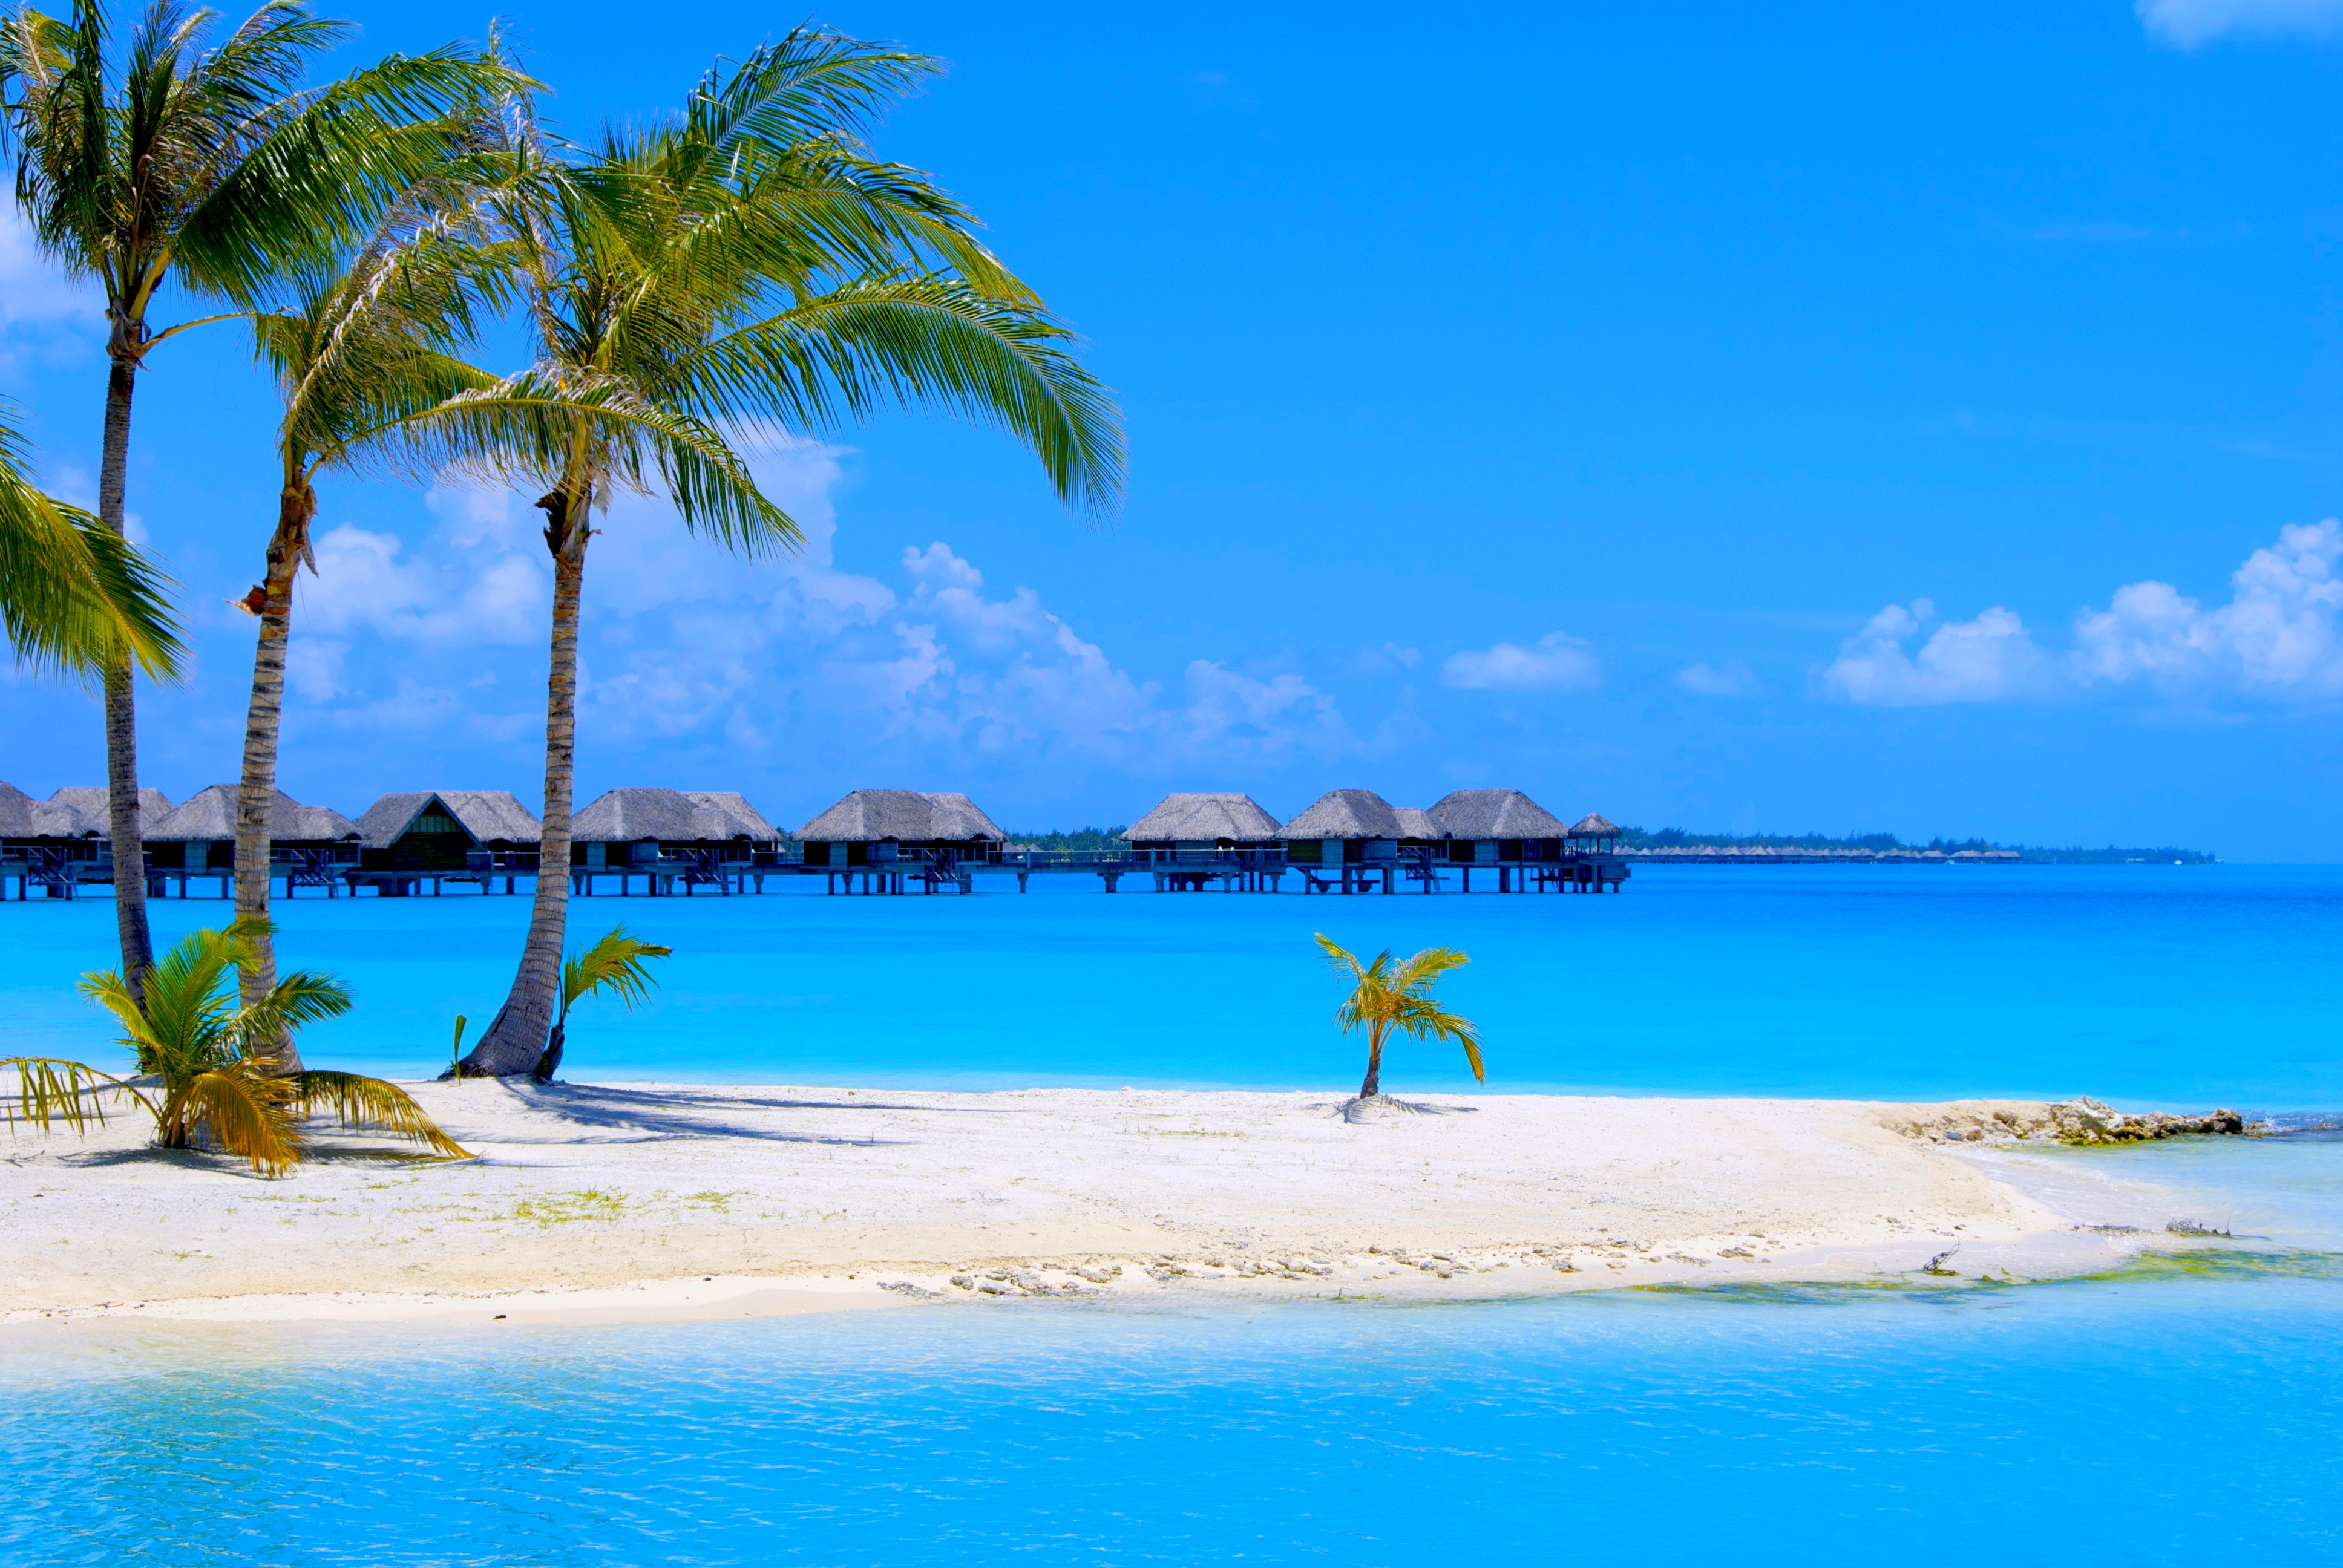 tropical resorts wallpaper background - photo #29